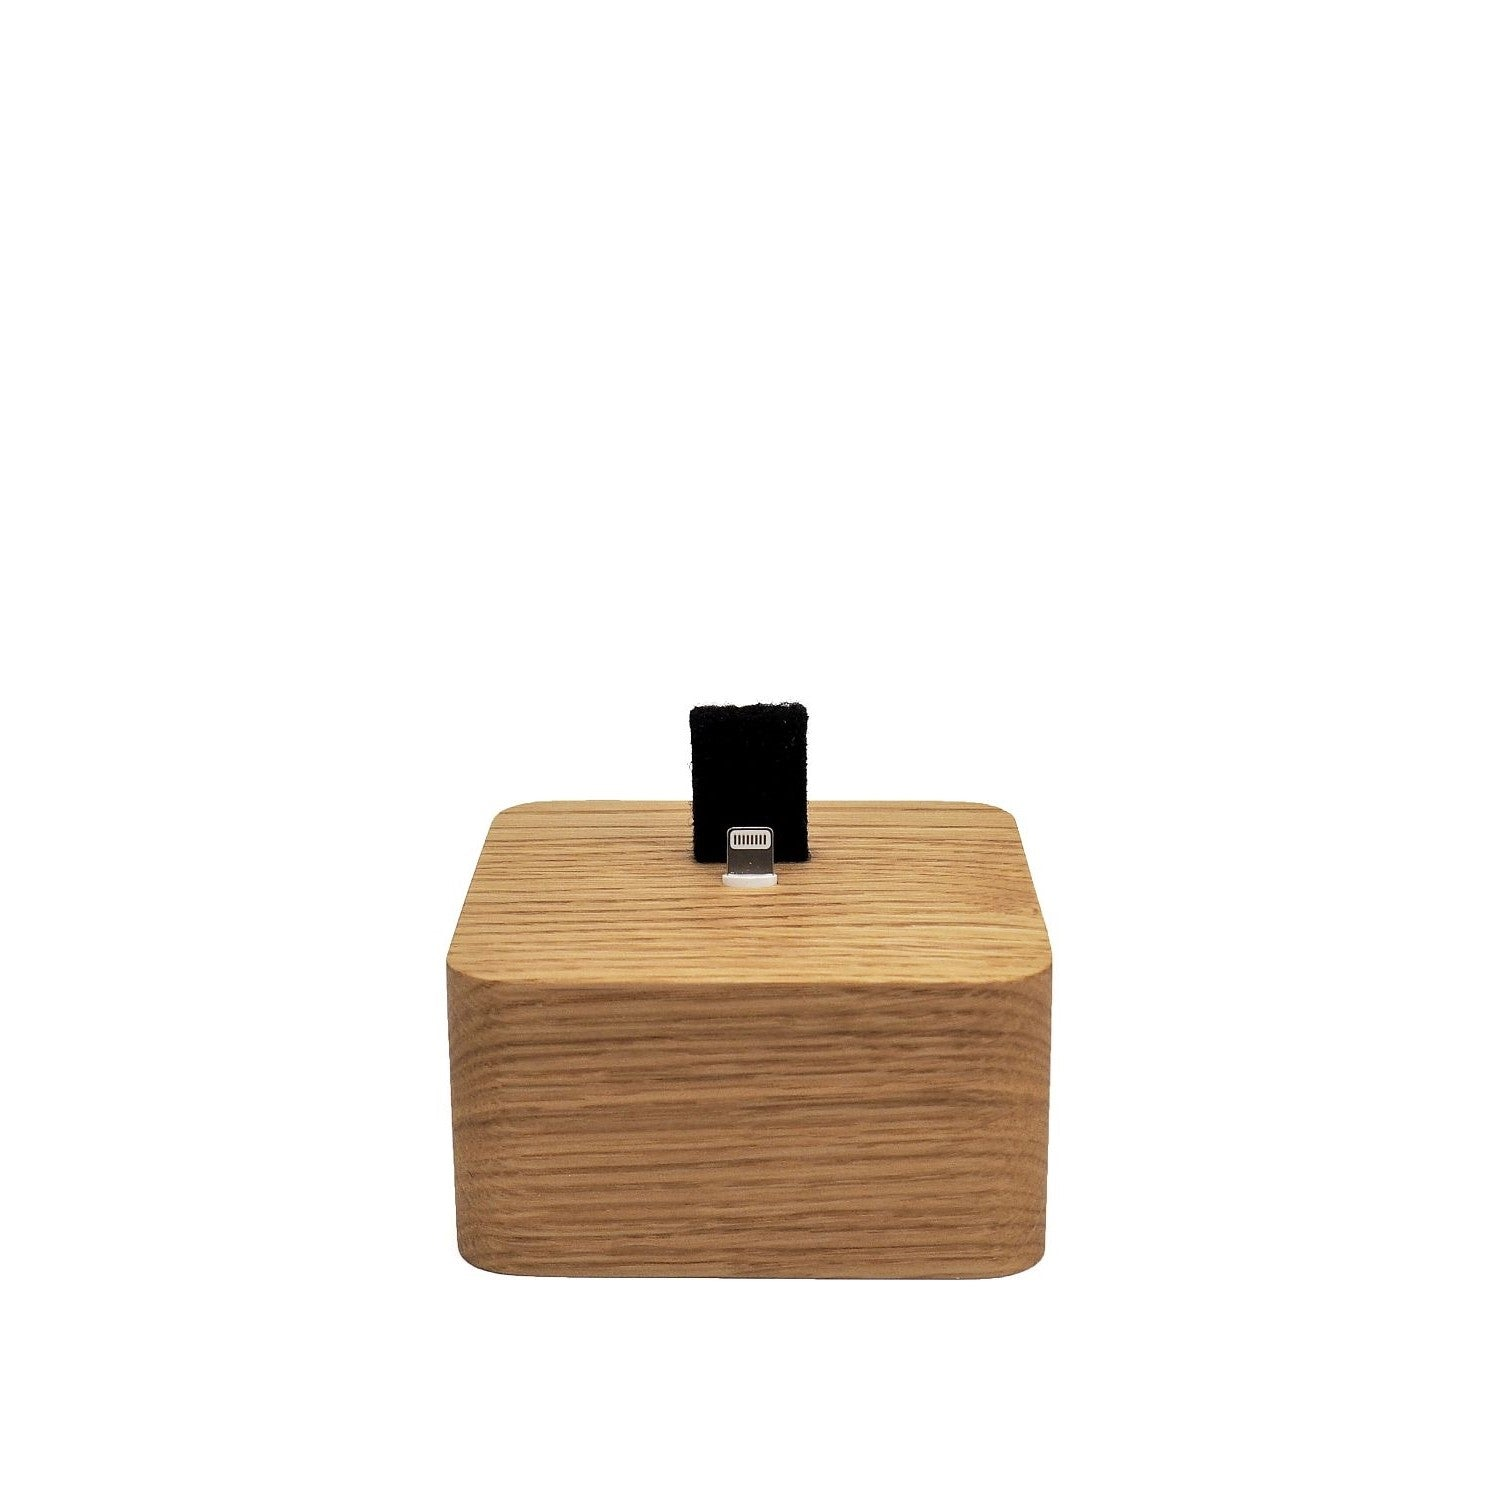 iPhone Square Dock